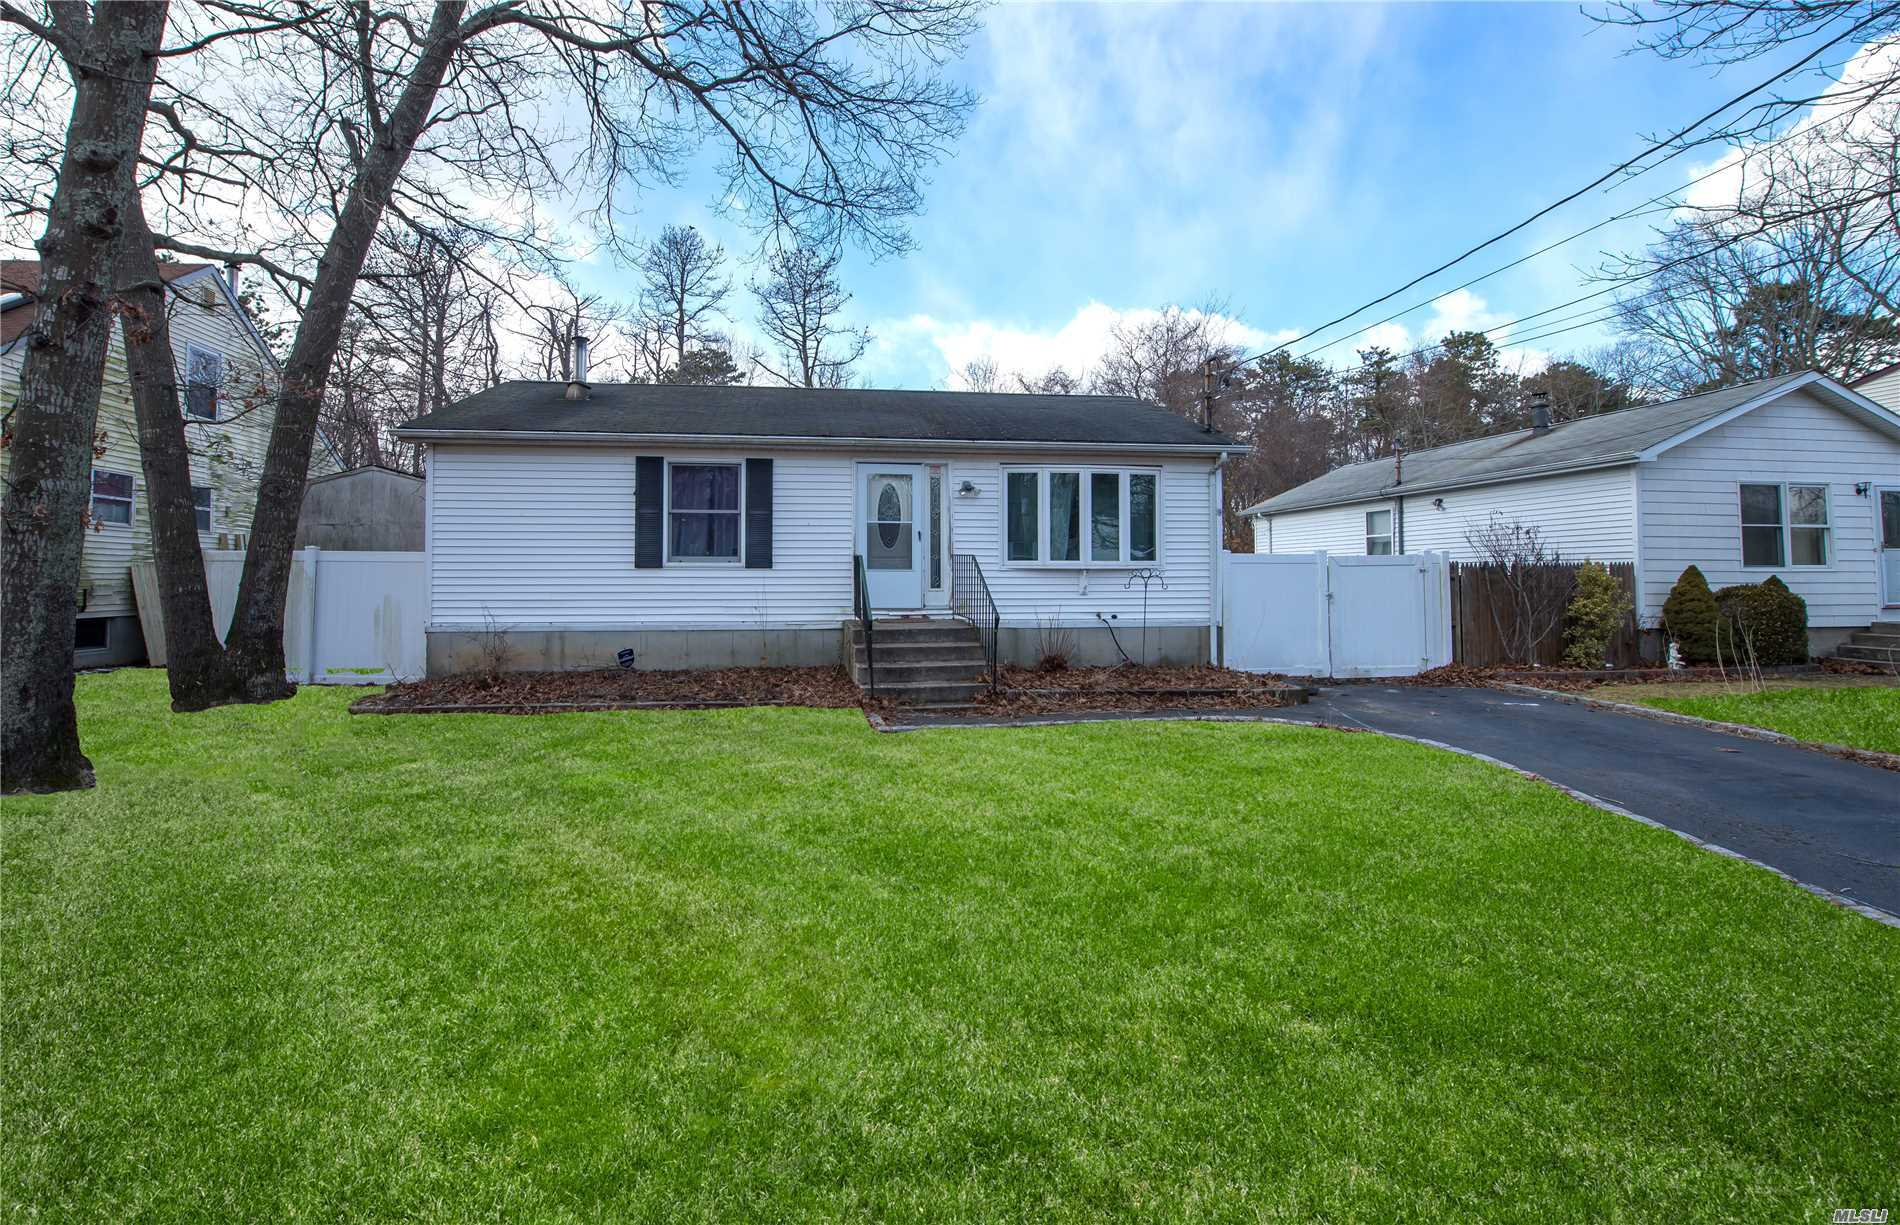 Looking for a Cozy starter home? Look NO MORE! This charming 2 bedroom w/ WIC, Spacious bath, Big EIK, Stainless steel appliances, New Porcelain tile and Hand Scrape grey floors. Huge basement with New Carpet. Fenced in backyard w/ a semi inground pool. This is a home you want to see.